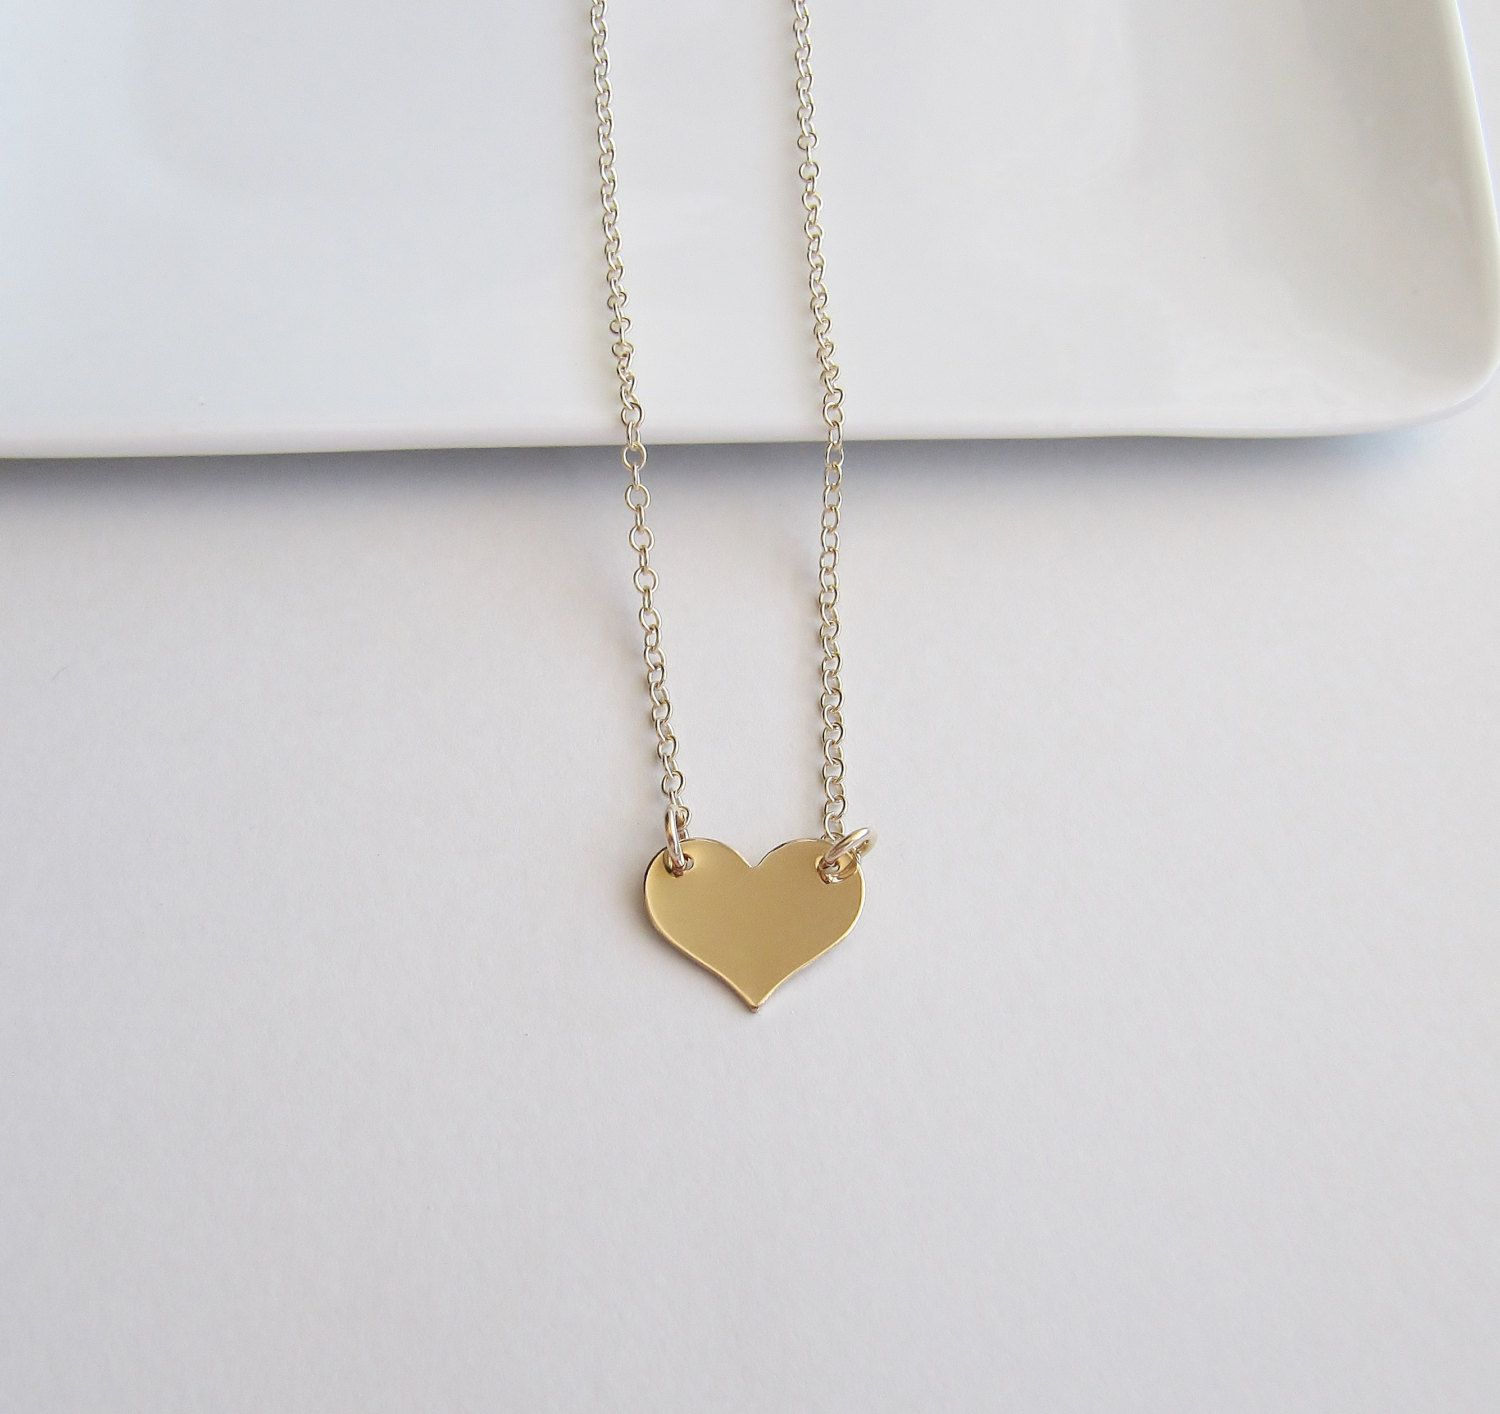 Photo of Gold Heart Necklace, Tiny Heart, Dainty Heart Necklace,14kt Gold Filled Jewelry,Minimalist Necklace,Layering Necklace,Sentimental Jewelry